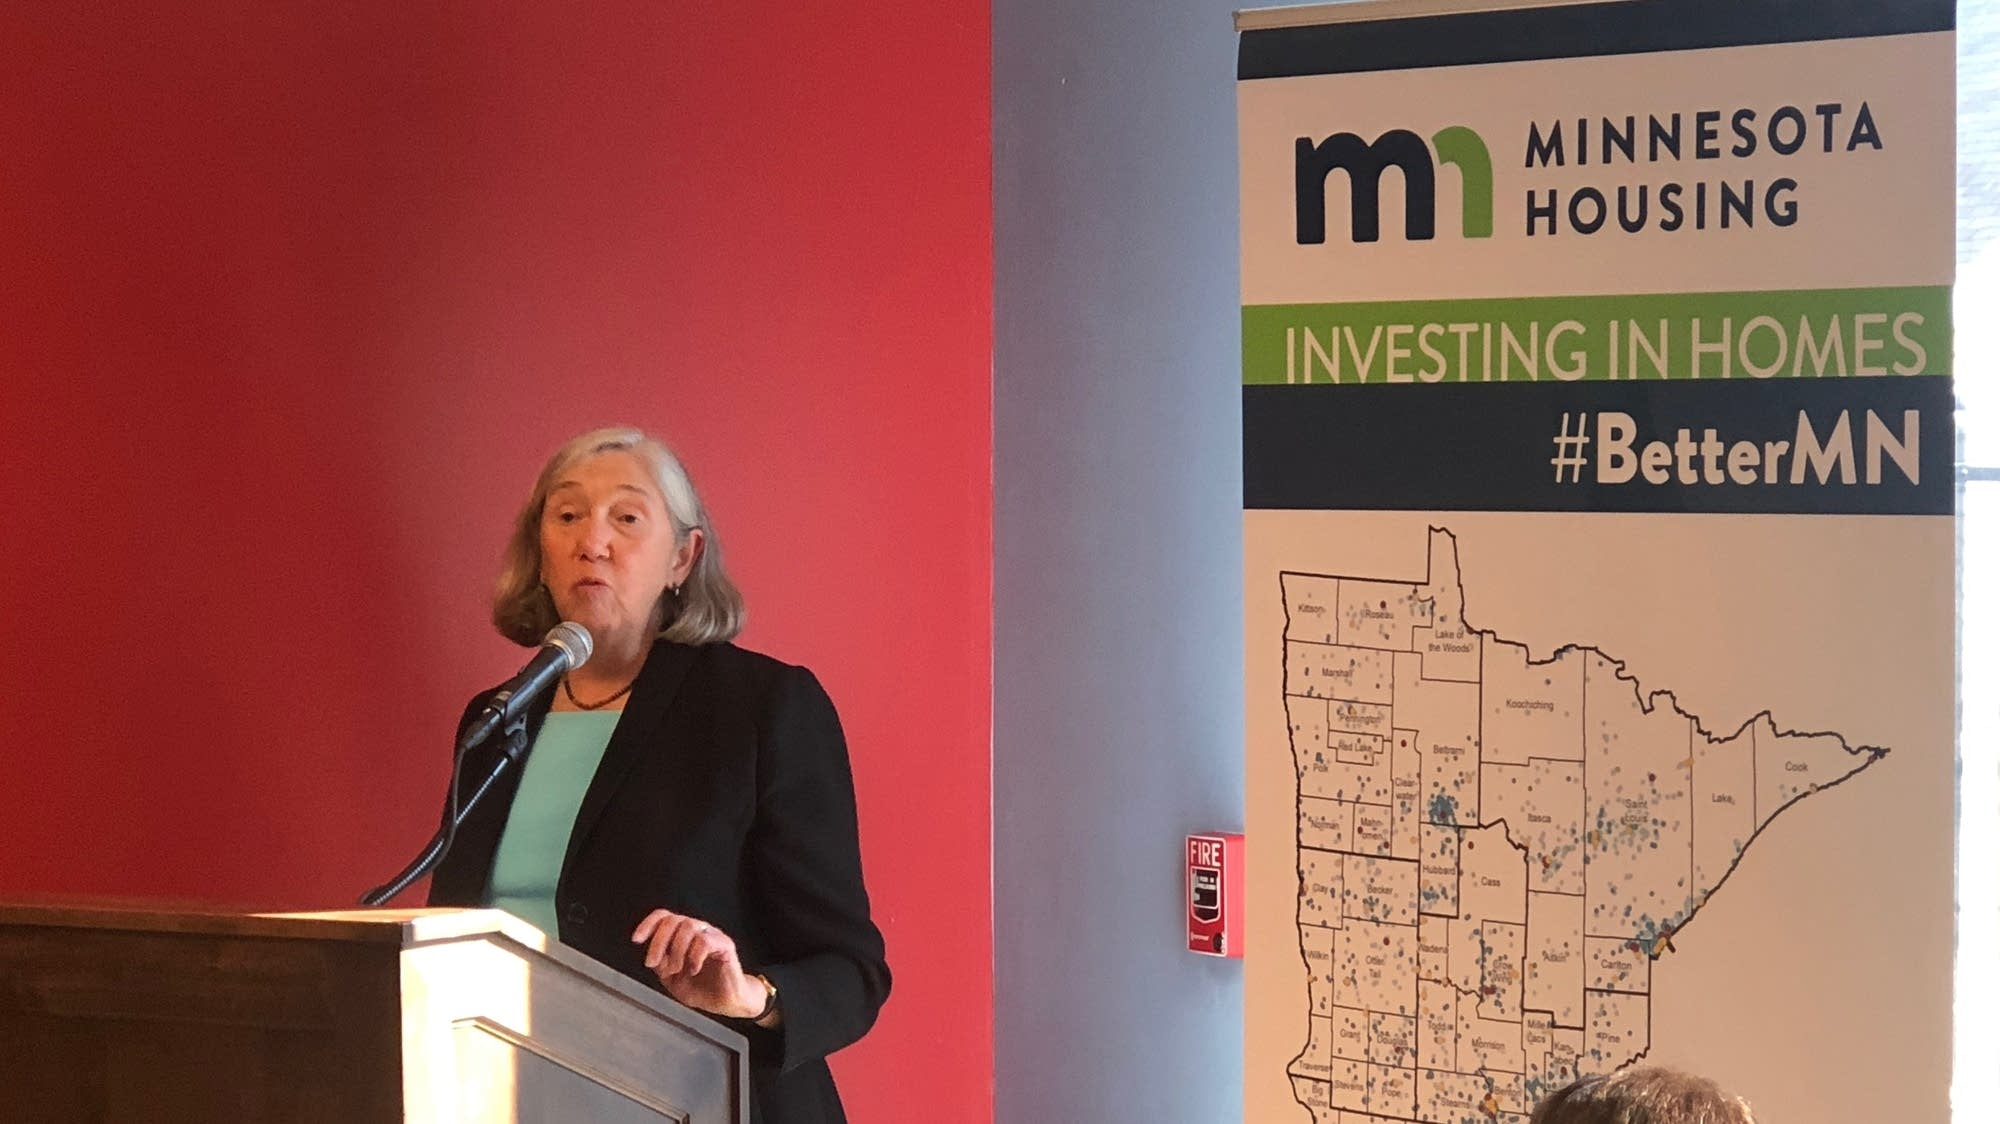 Mary Tingerthal announced new affordable housing funding